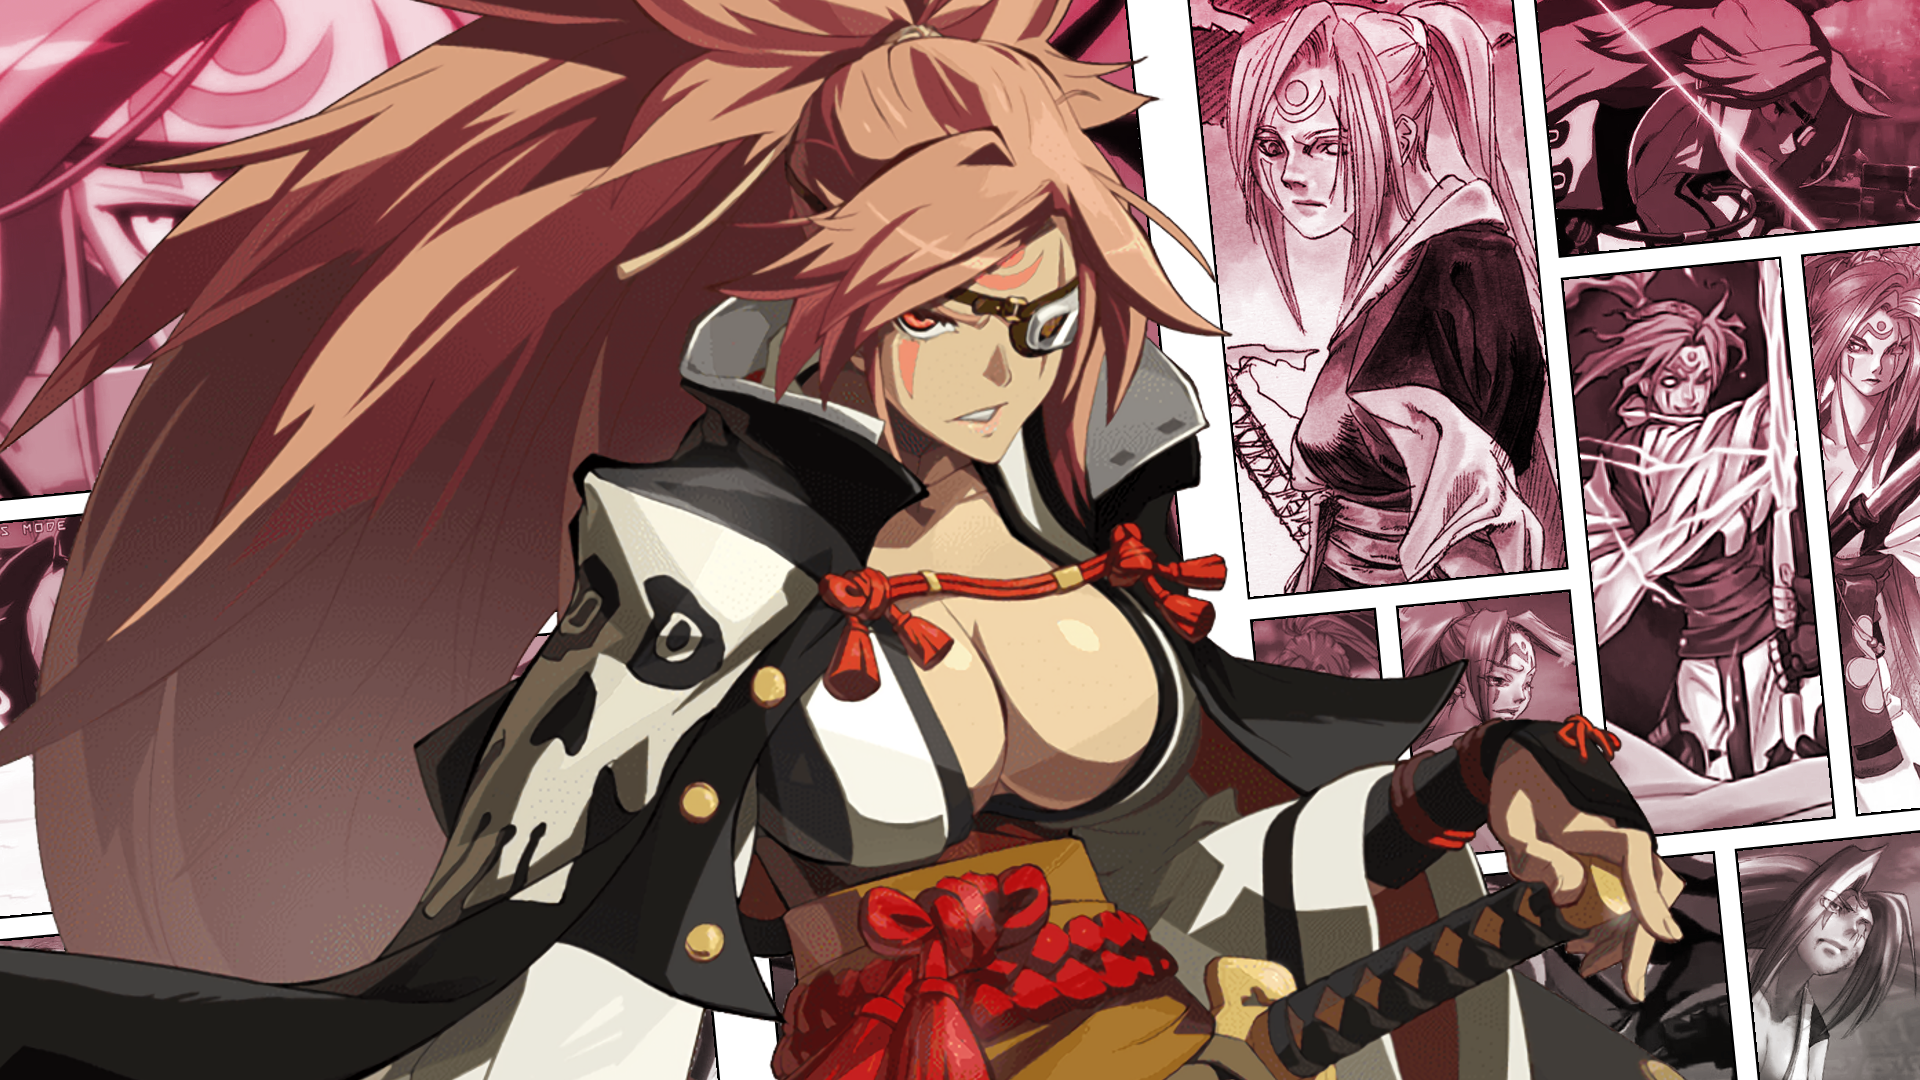 Guilty Gear Xrd Rev 2 Wallpaper Posted By Michelle Sellers